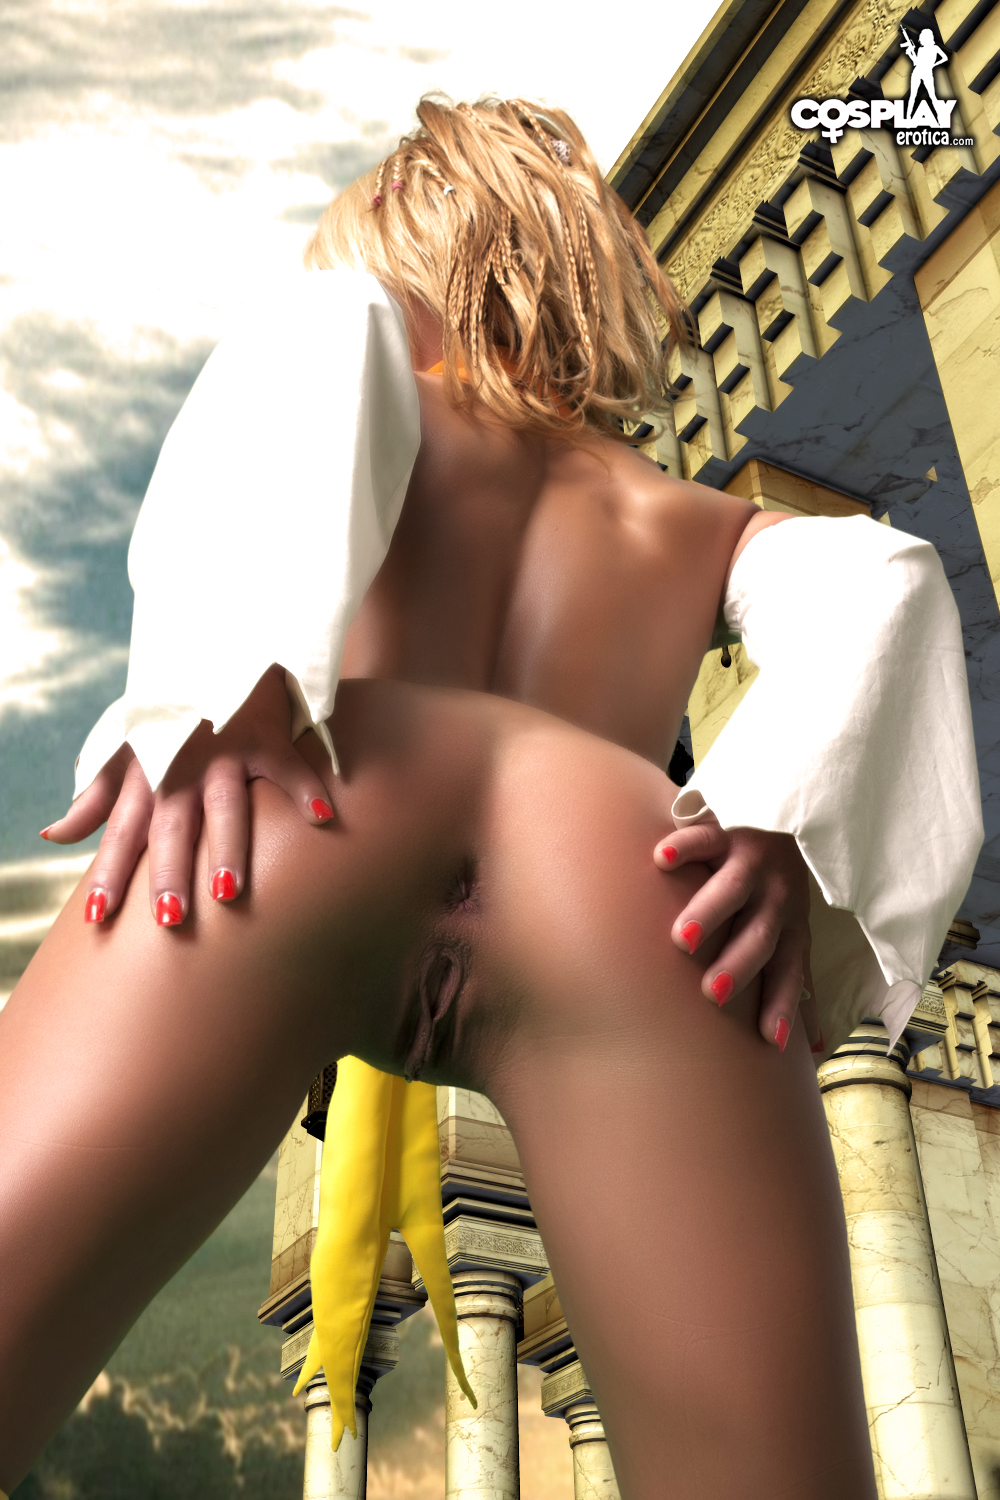 Final fantasy real nude — pic 6